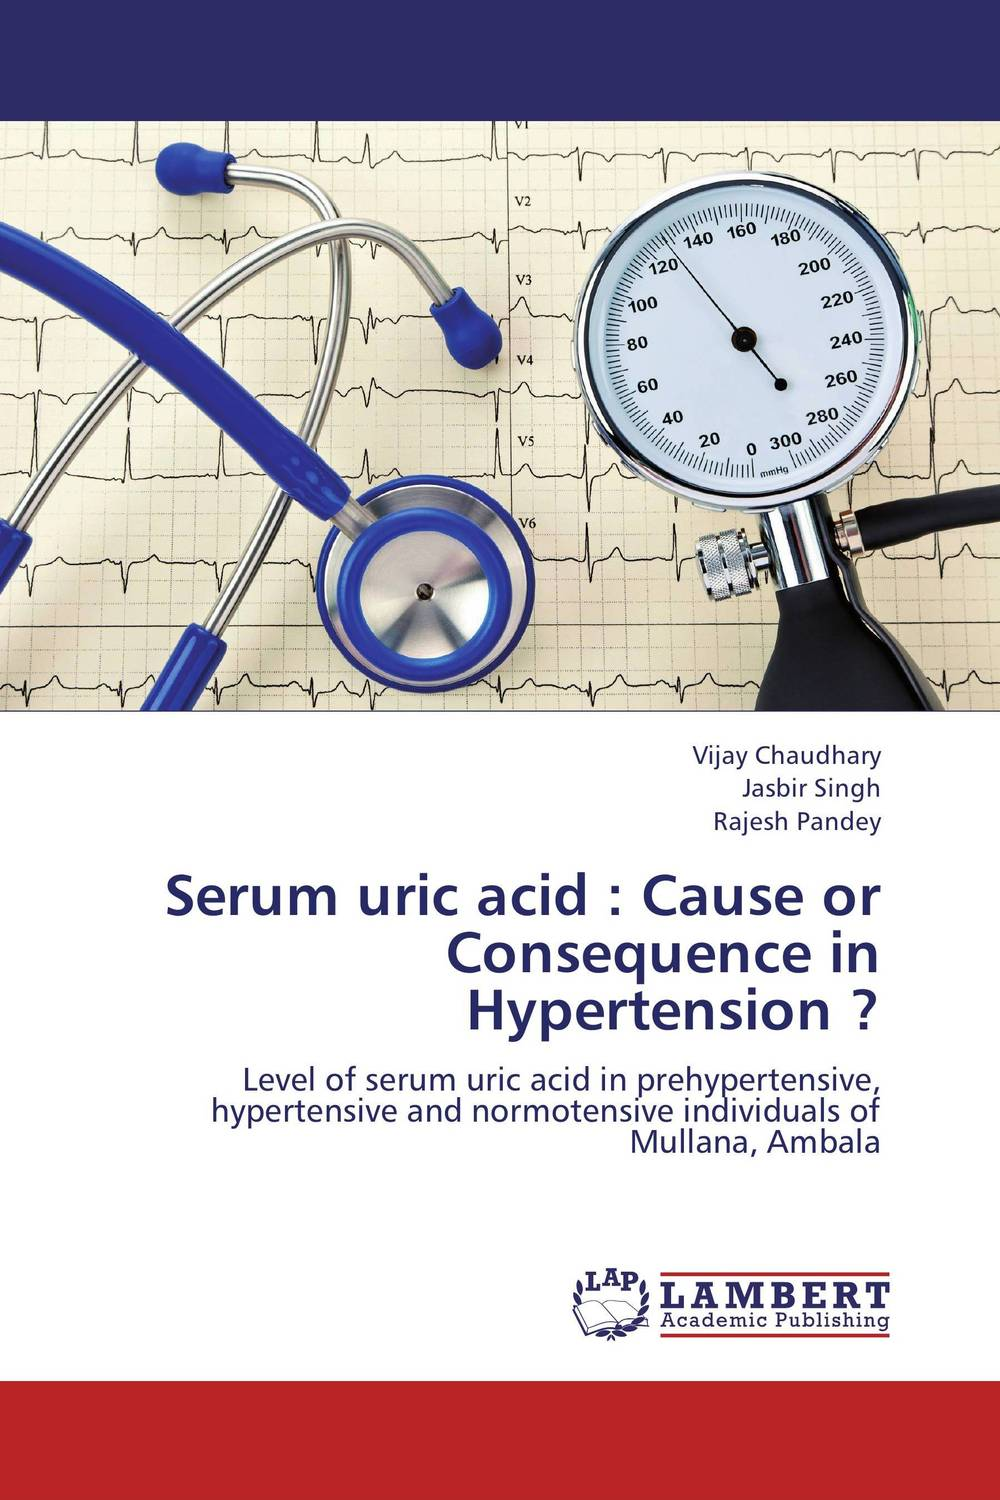 Serum  uric acid : Cause or Consequence in Hypertension ? 1 box blood uric acid balance tea lower uric acid treatment gout remedios natural acido urico